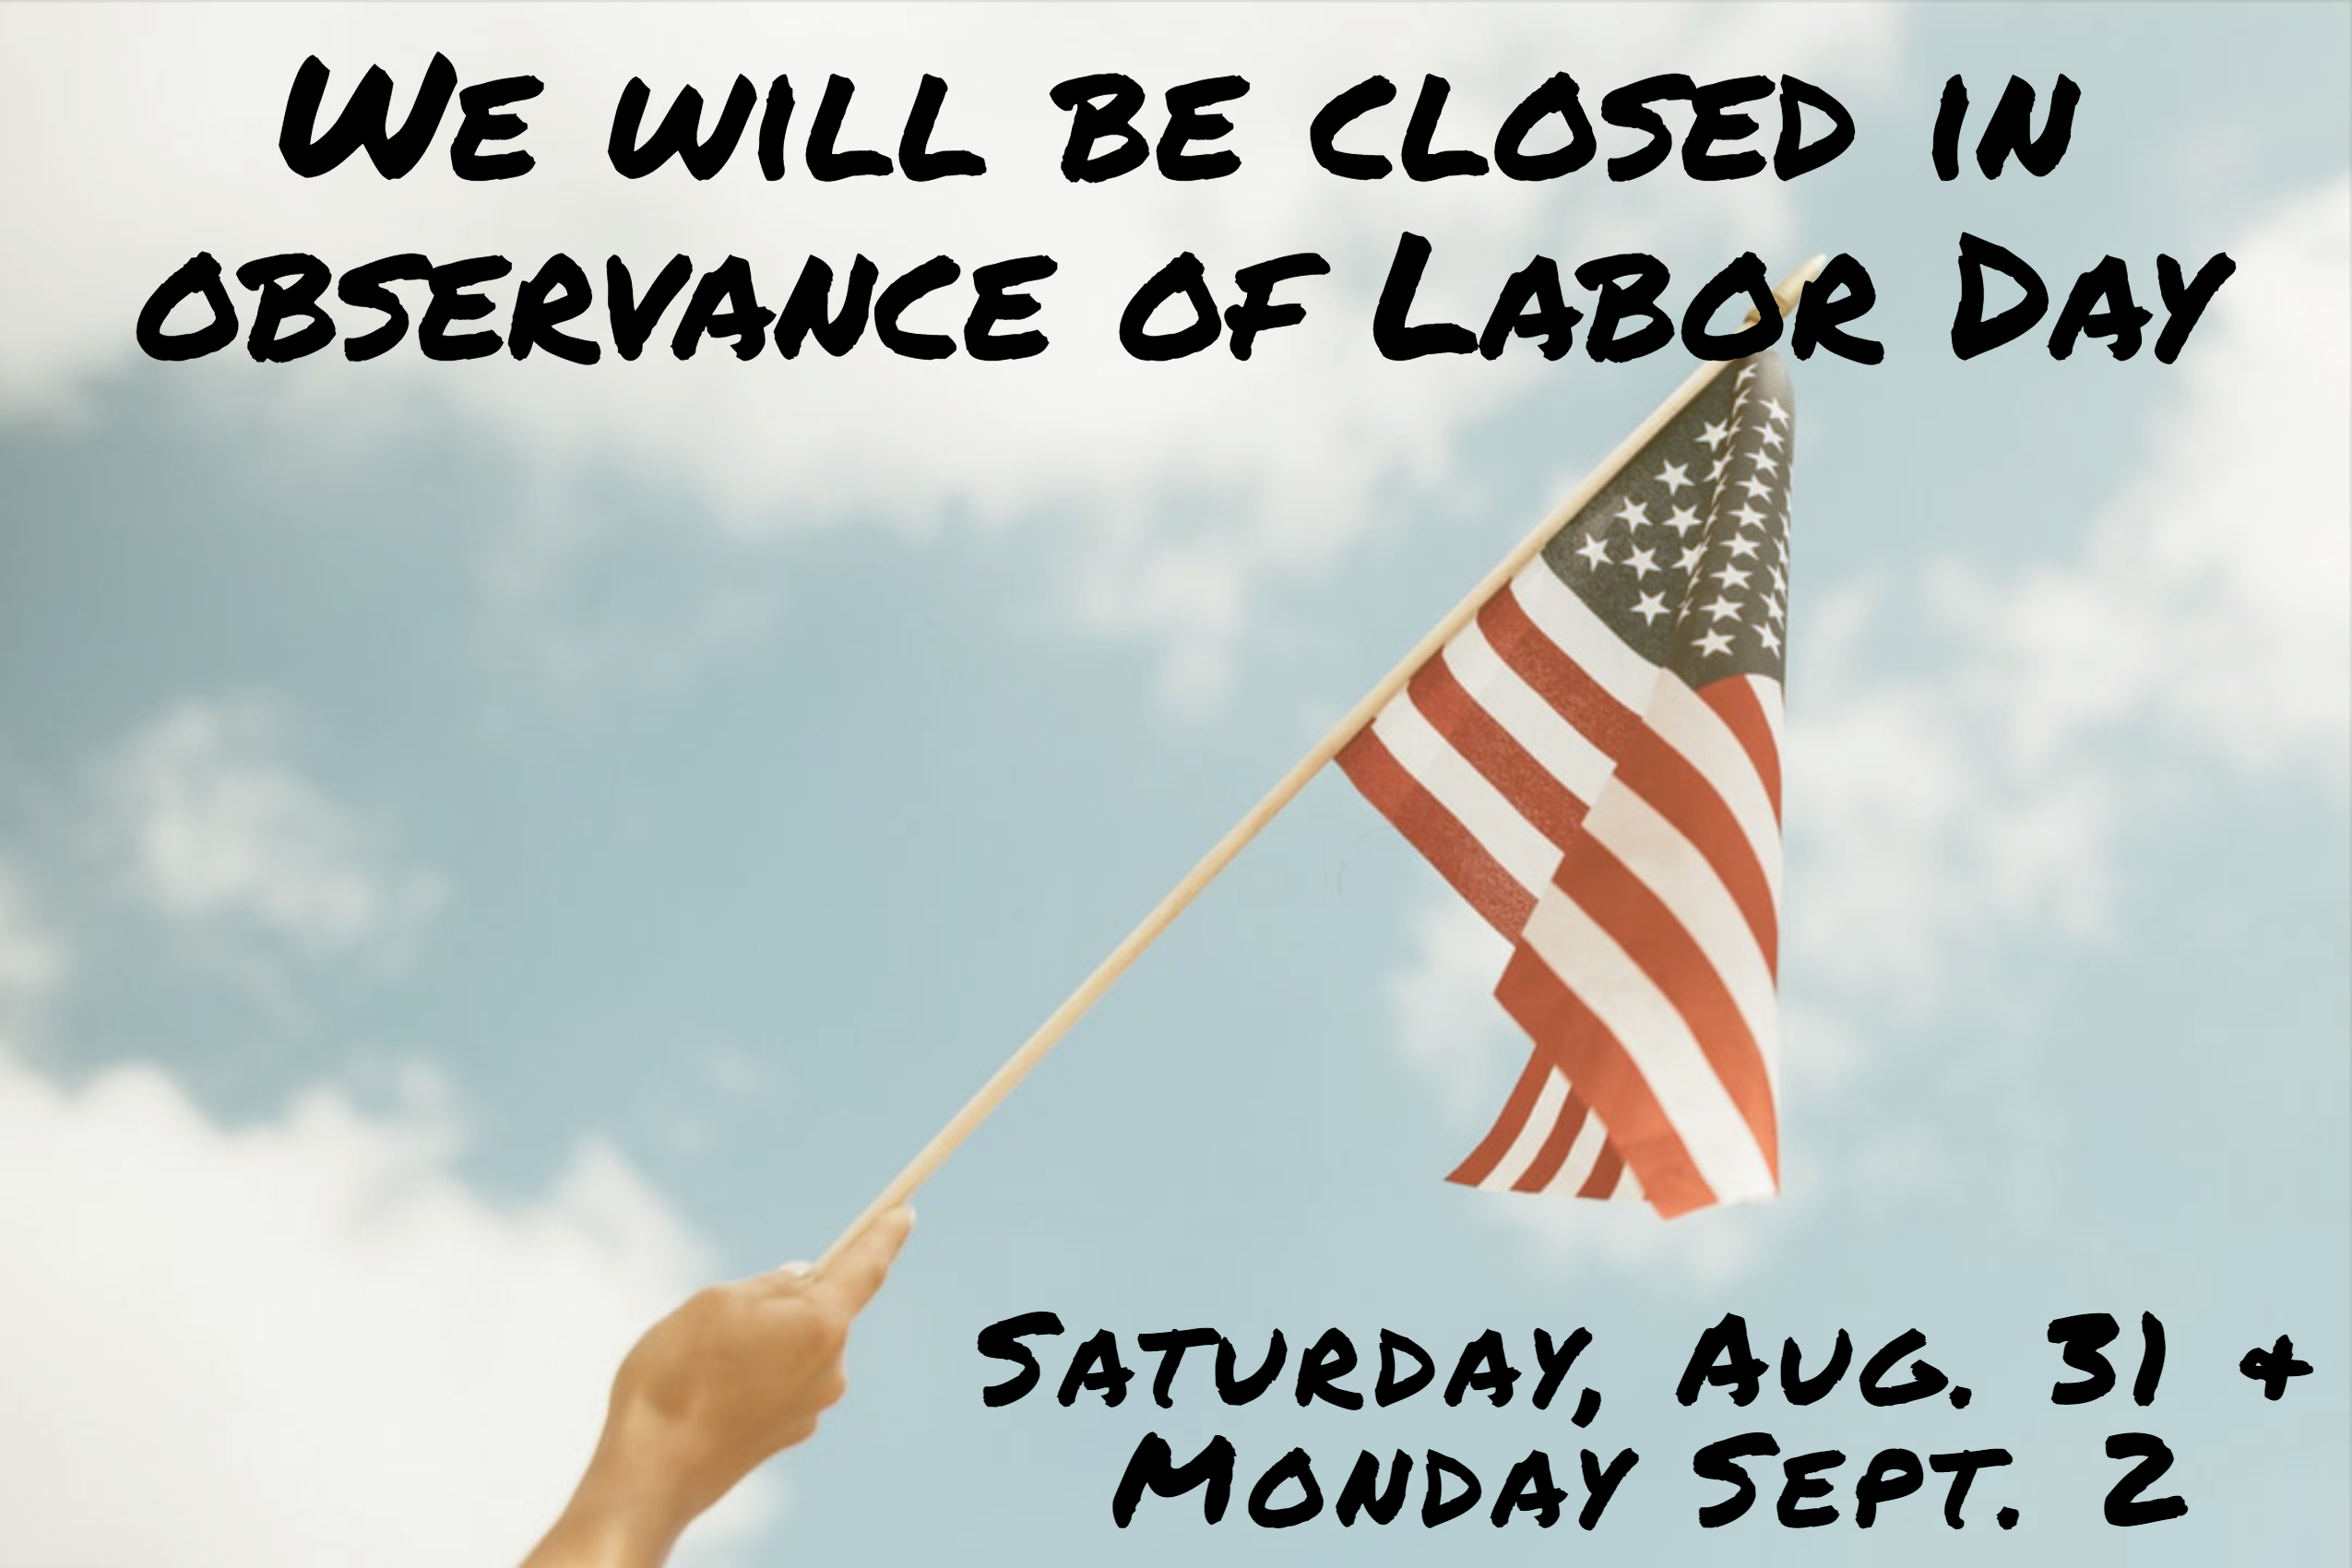 Happy and Safe Labor Day Wishes From Thelen Audi in Bay City